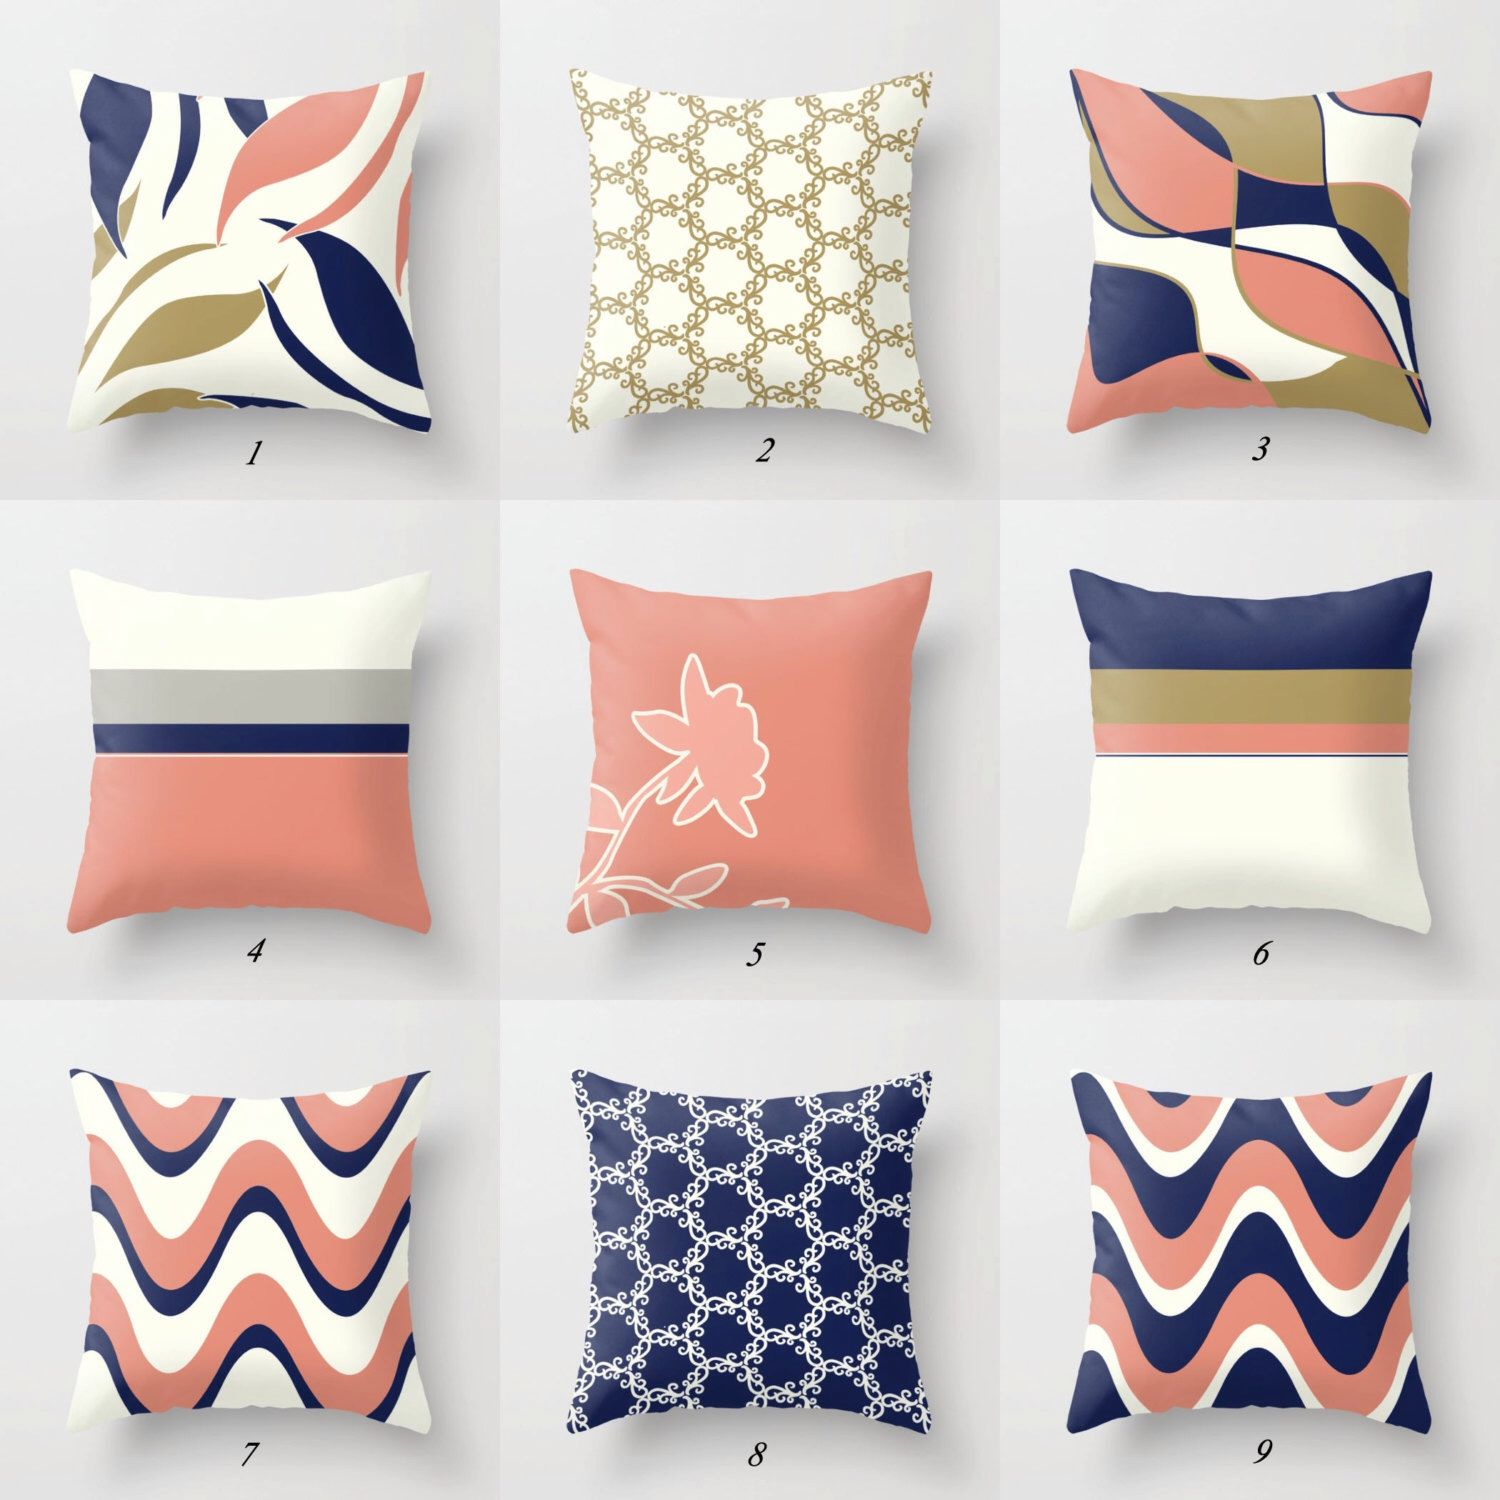 Navy Blue Pillow Pink And Blue Pillow Covers Pink And Navy Coral Pillow Pink And Gold Pillow White Blue Pillows Blue Throw Pillows White And Gold Pillows